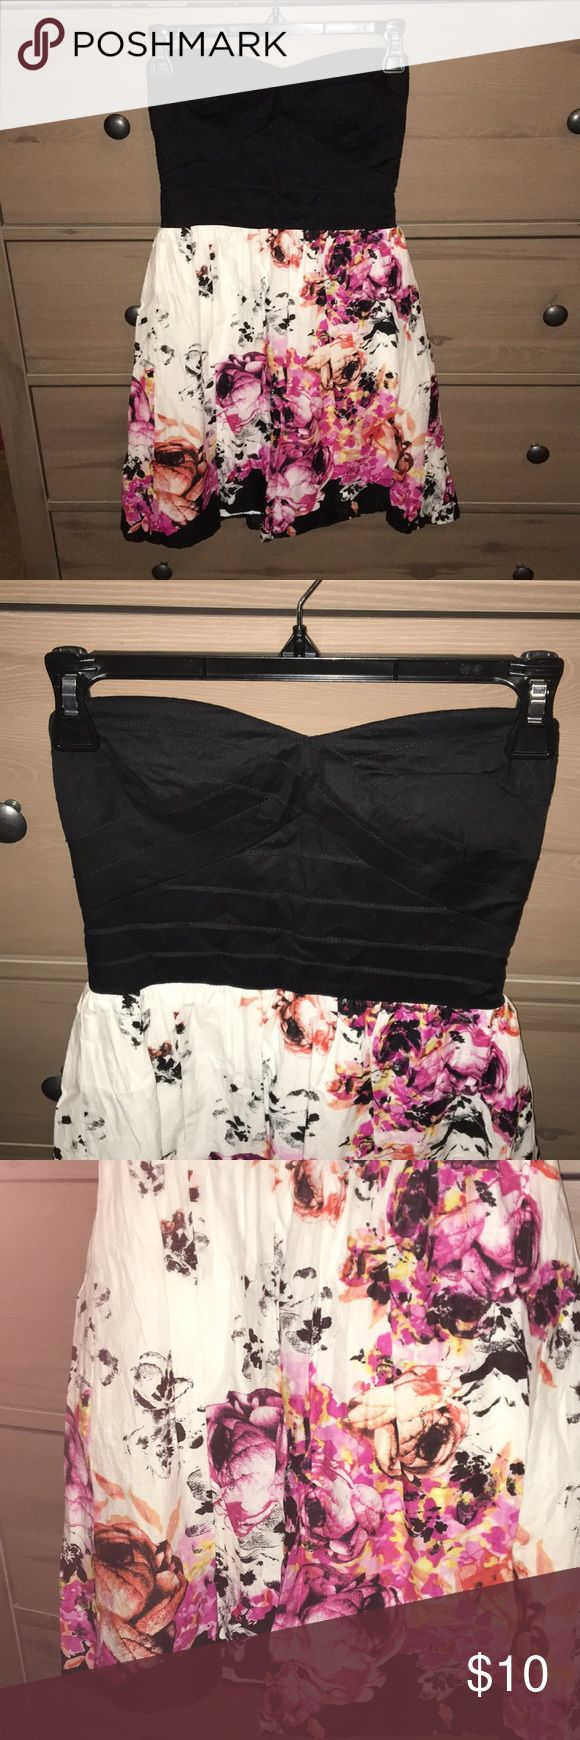 Strapless Flowered Junior Dress Junior size 3 Strapless Flowered Dress with black top with zip up back. Self is 100% Cotton, Contrast is 97% Cotton & 3% Spandex and lining is 100% Polyester. Trixxi Dresses Strapless